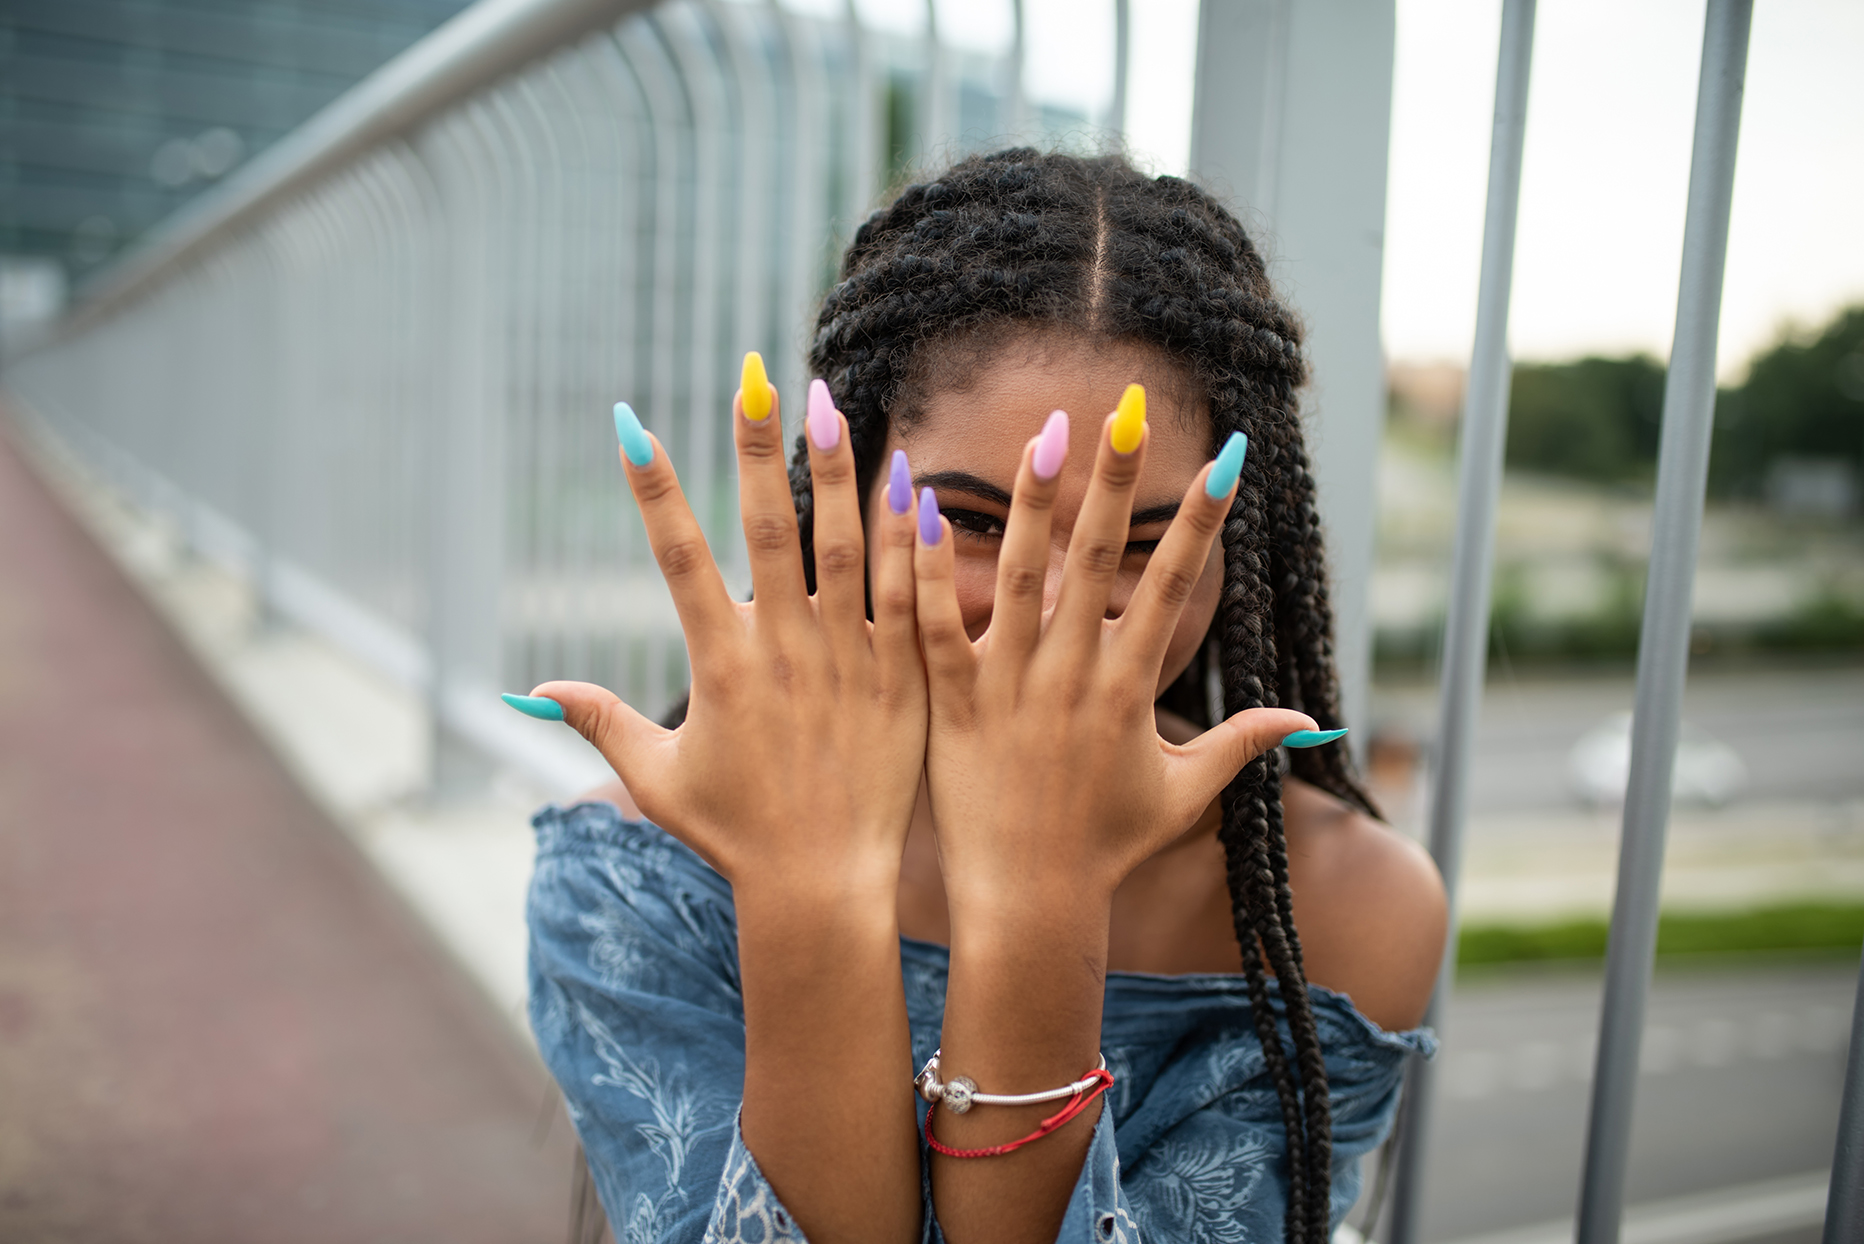 Model on city bridge posing with colorful nails